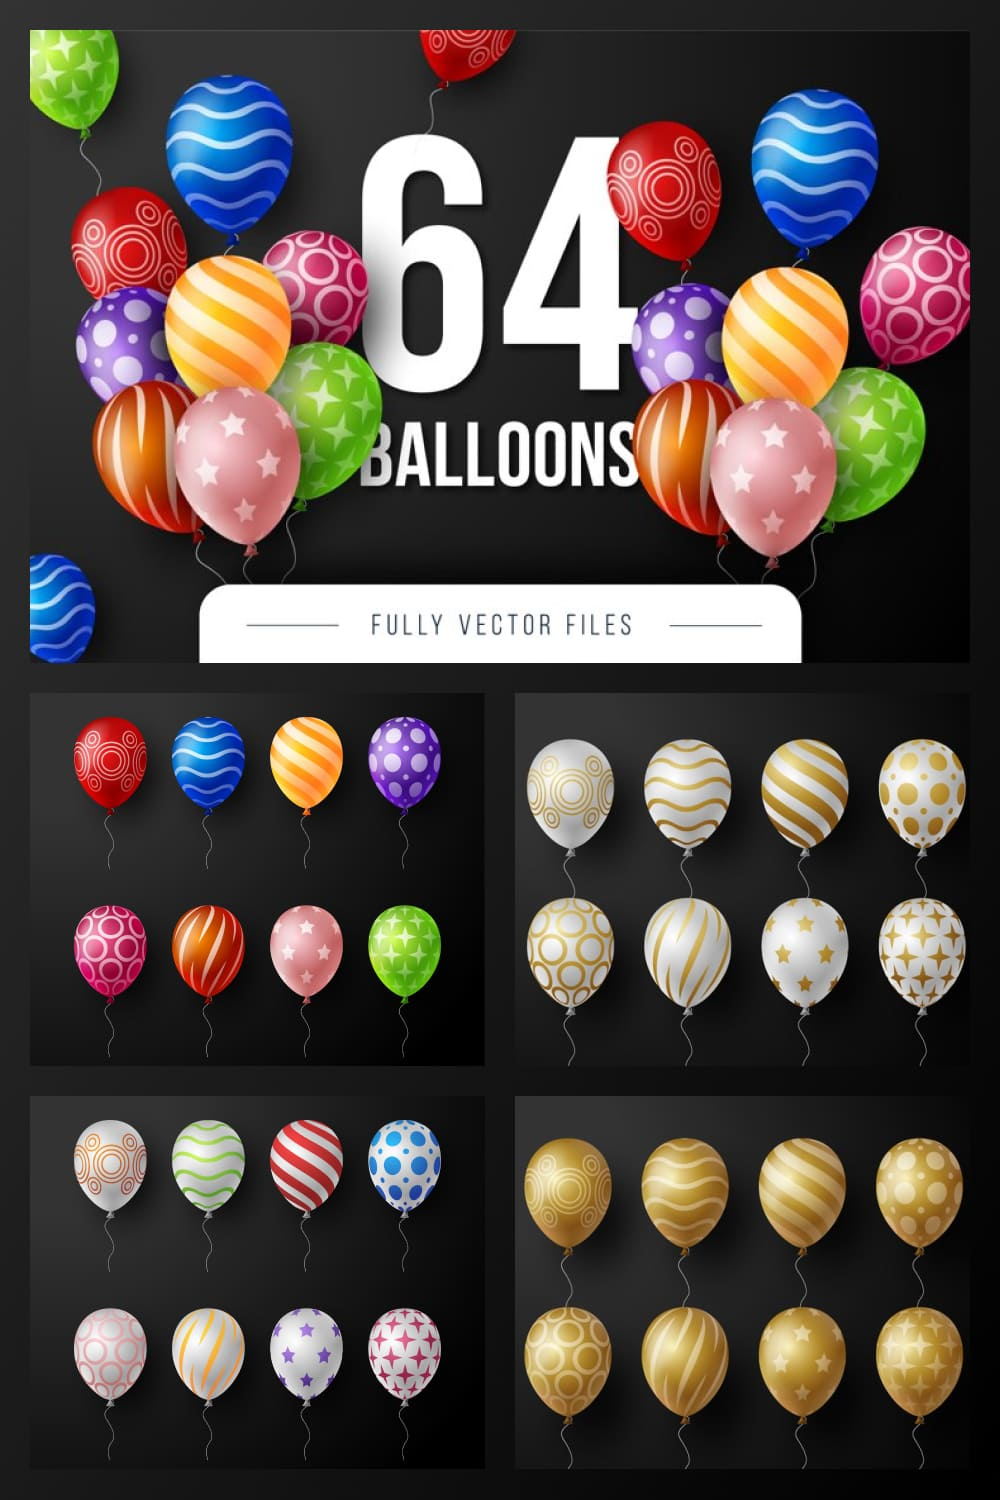 Gold balloons with prints and other colors.